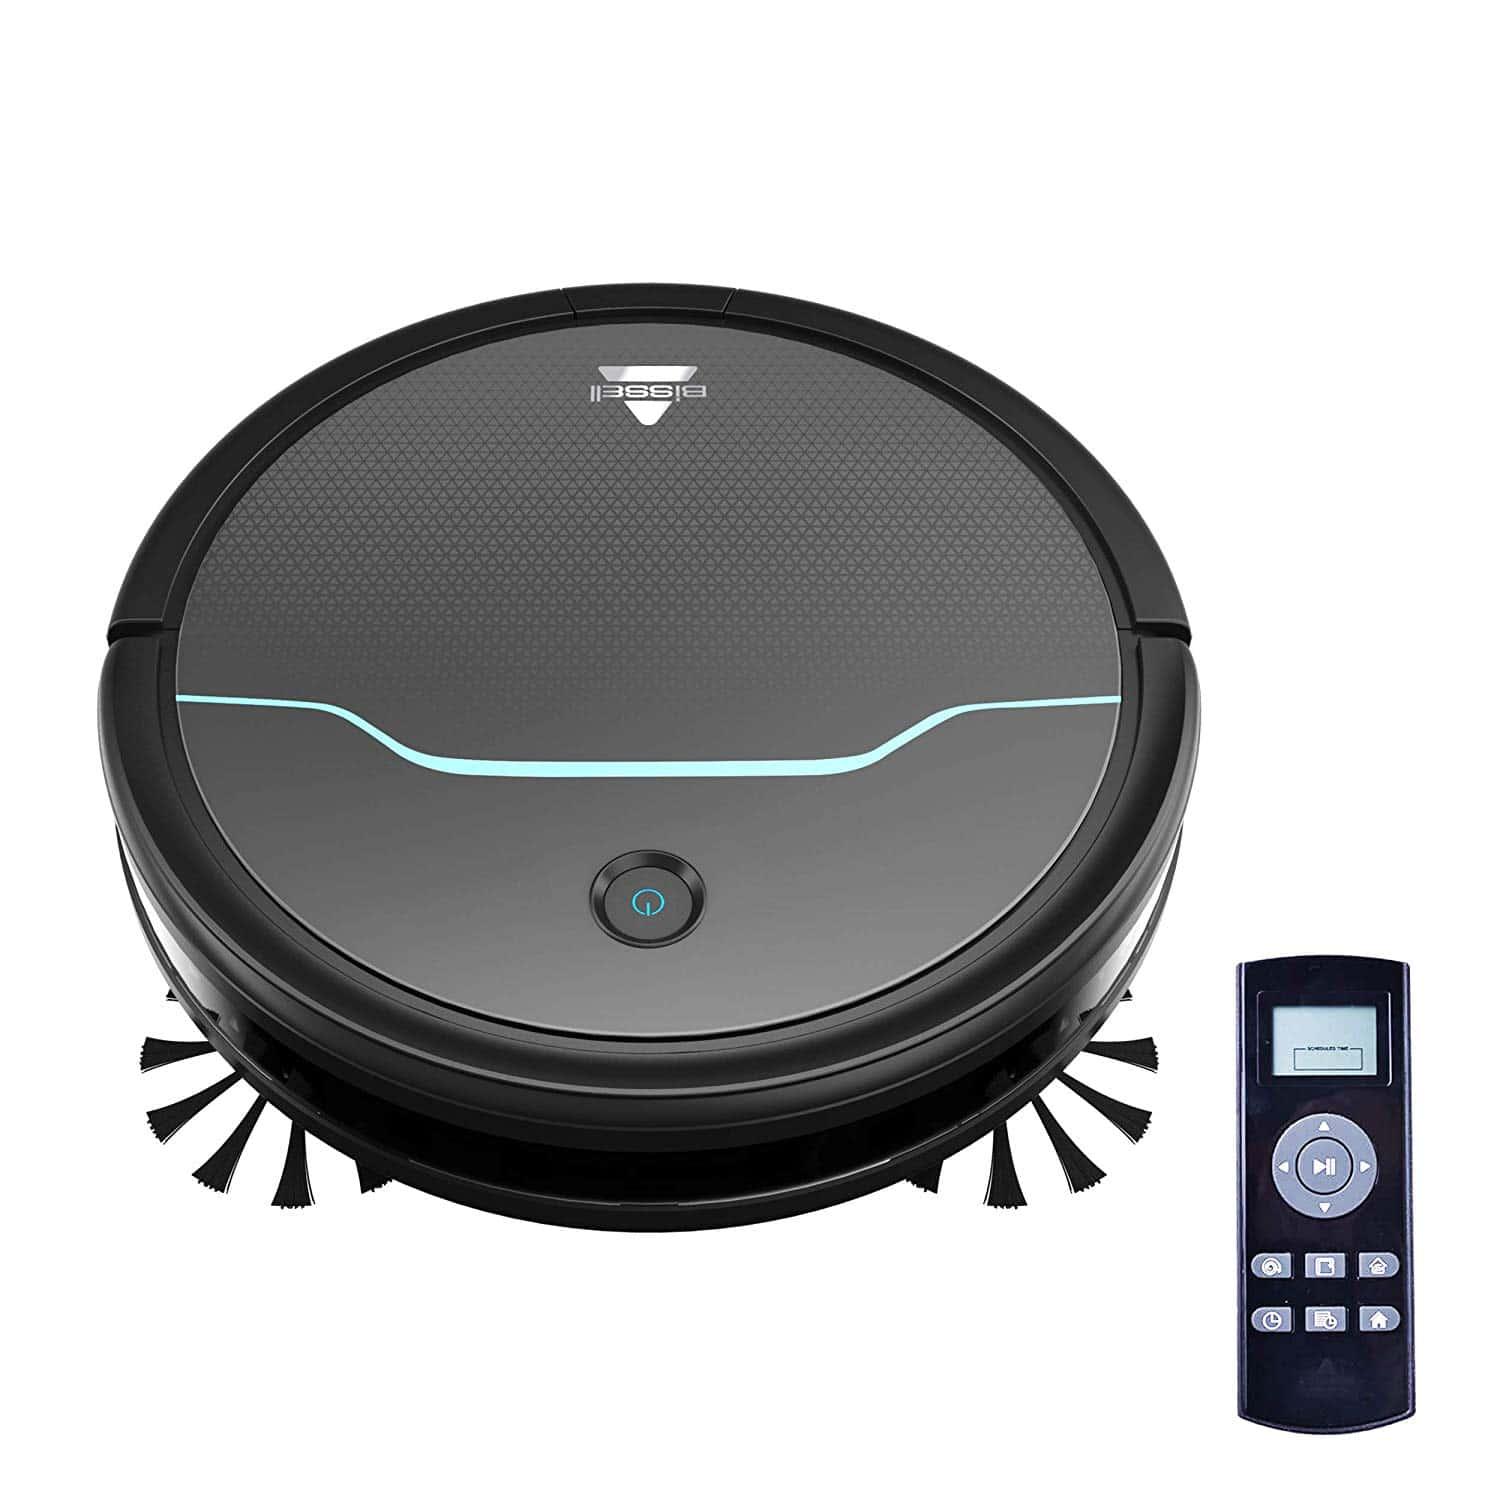 BISSELL Robot Vacuum Cleaner